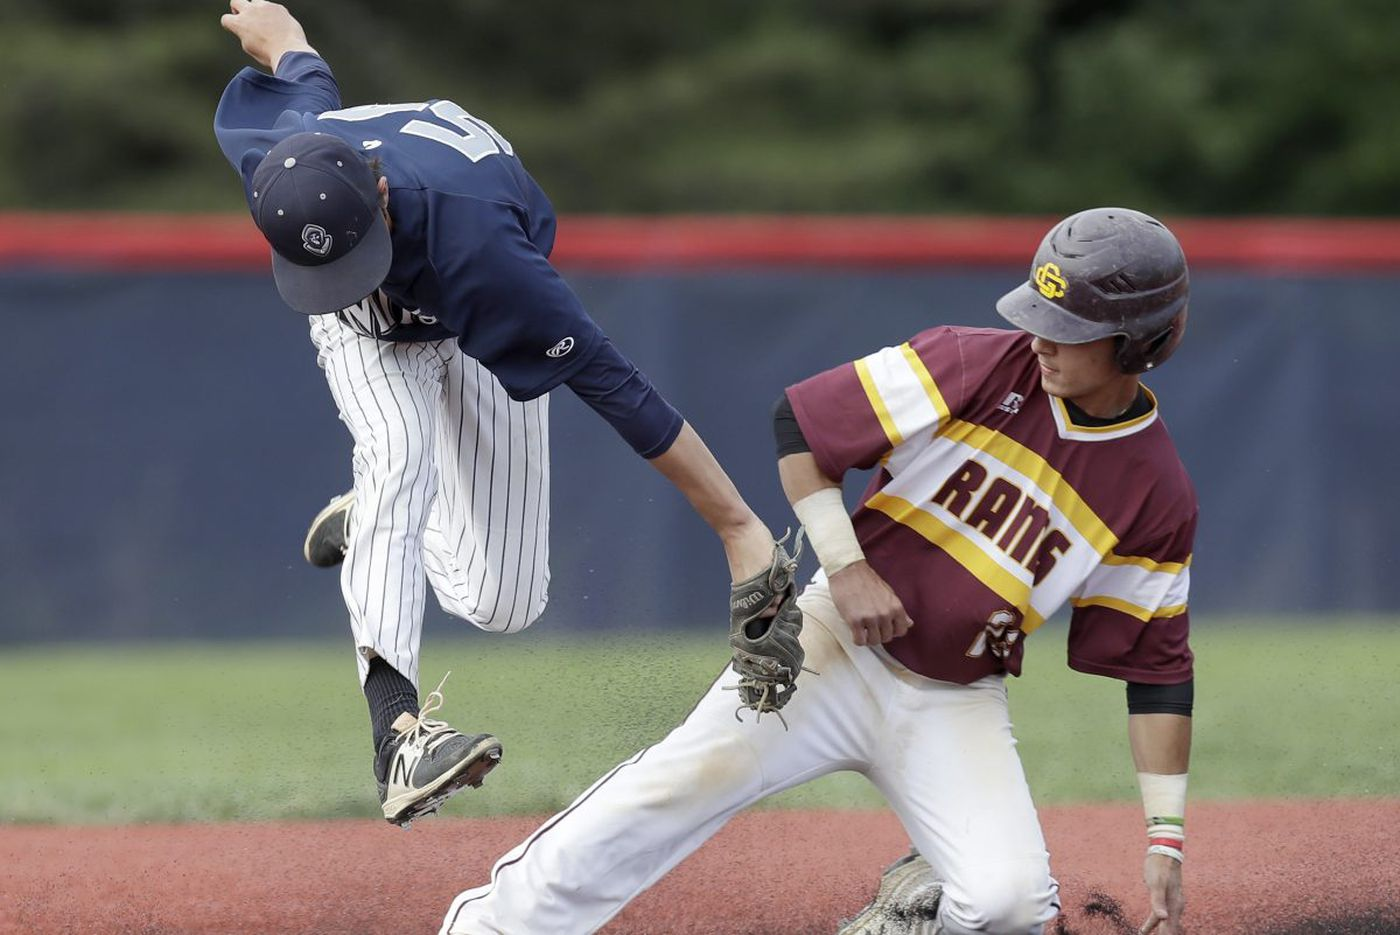 Friday's South Jersey roundup: Cory Kessler pitches gem in Egg Harbor Township baseball win